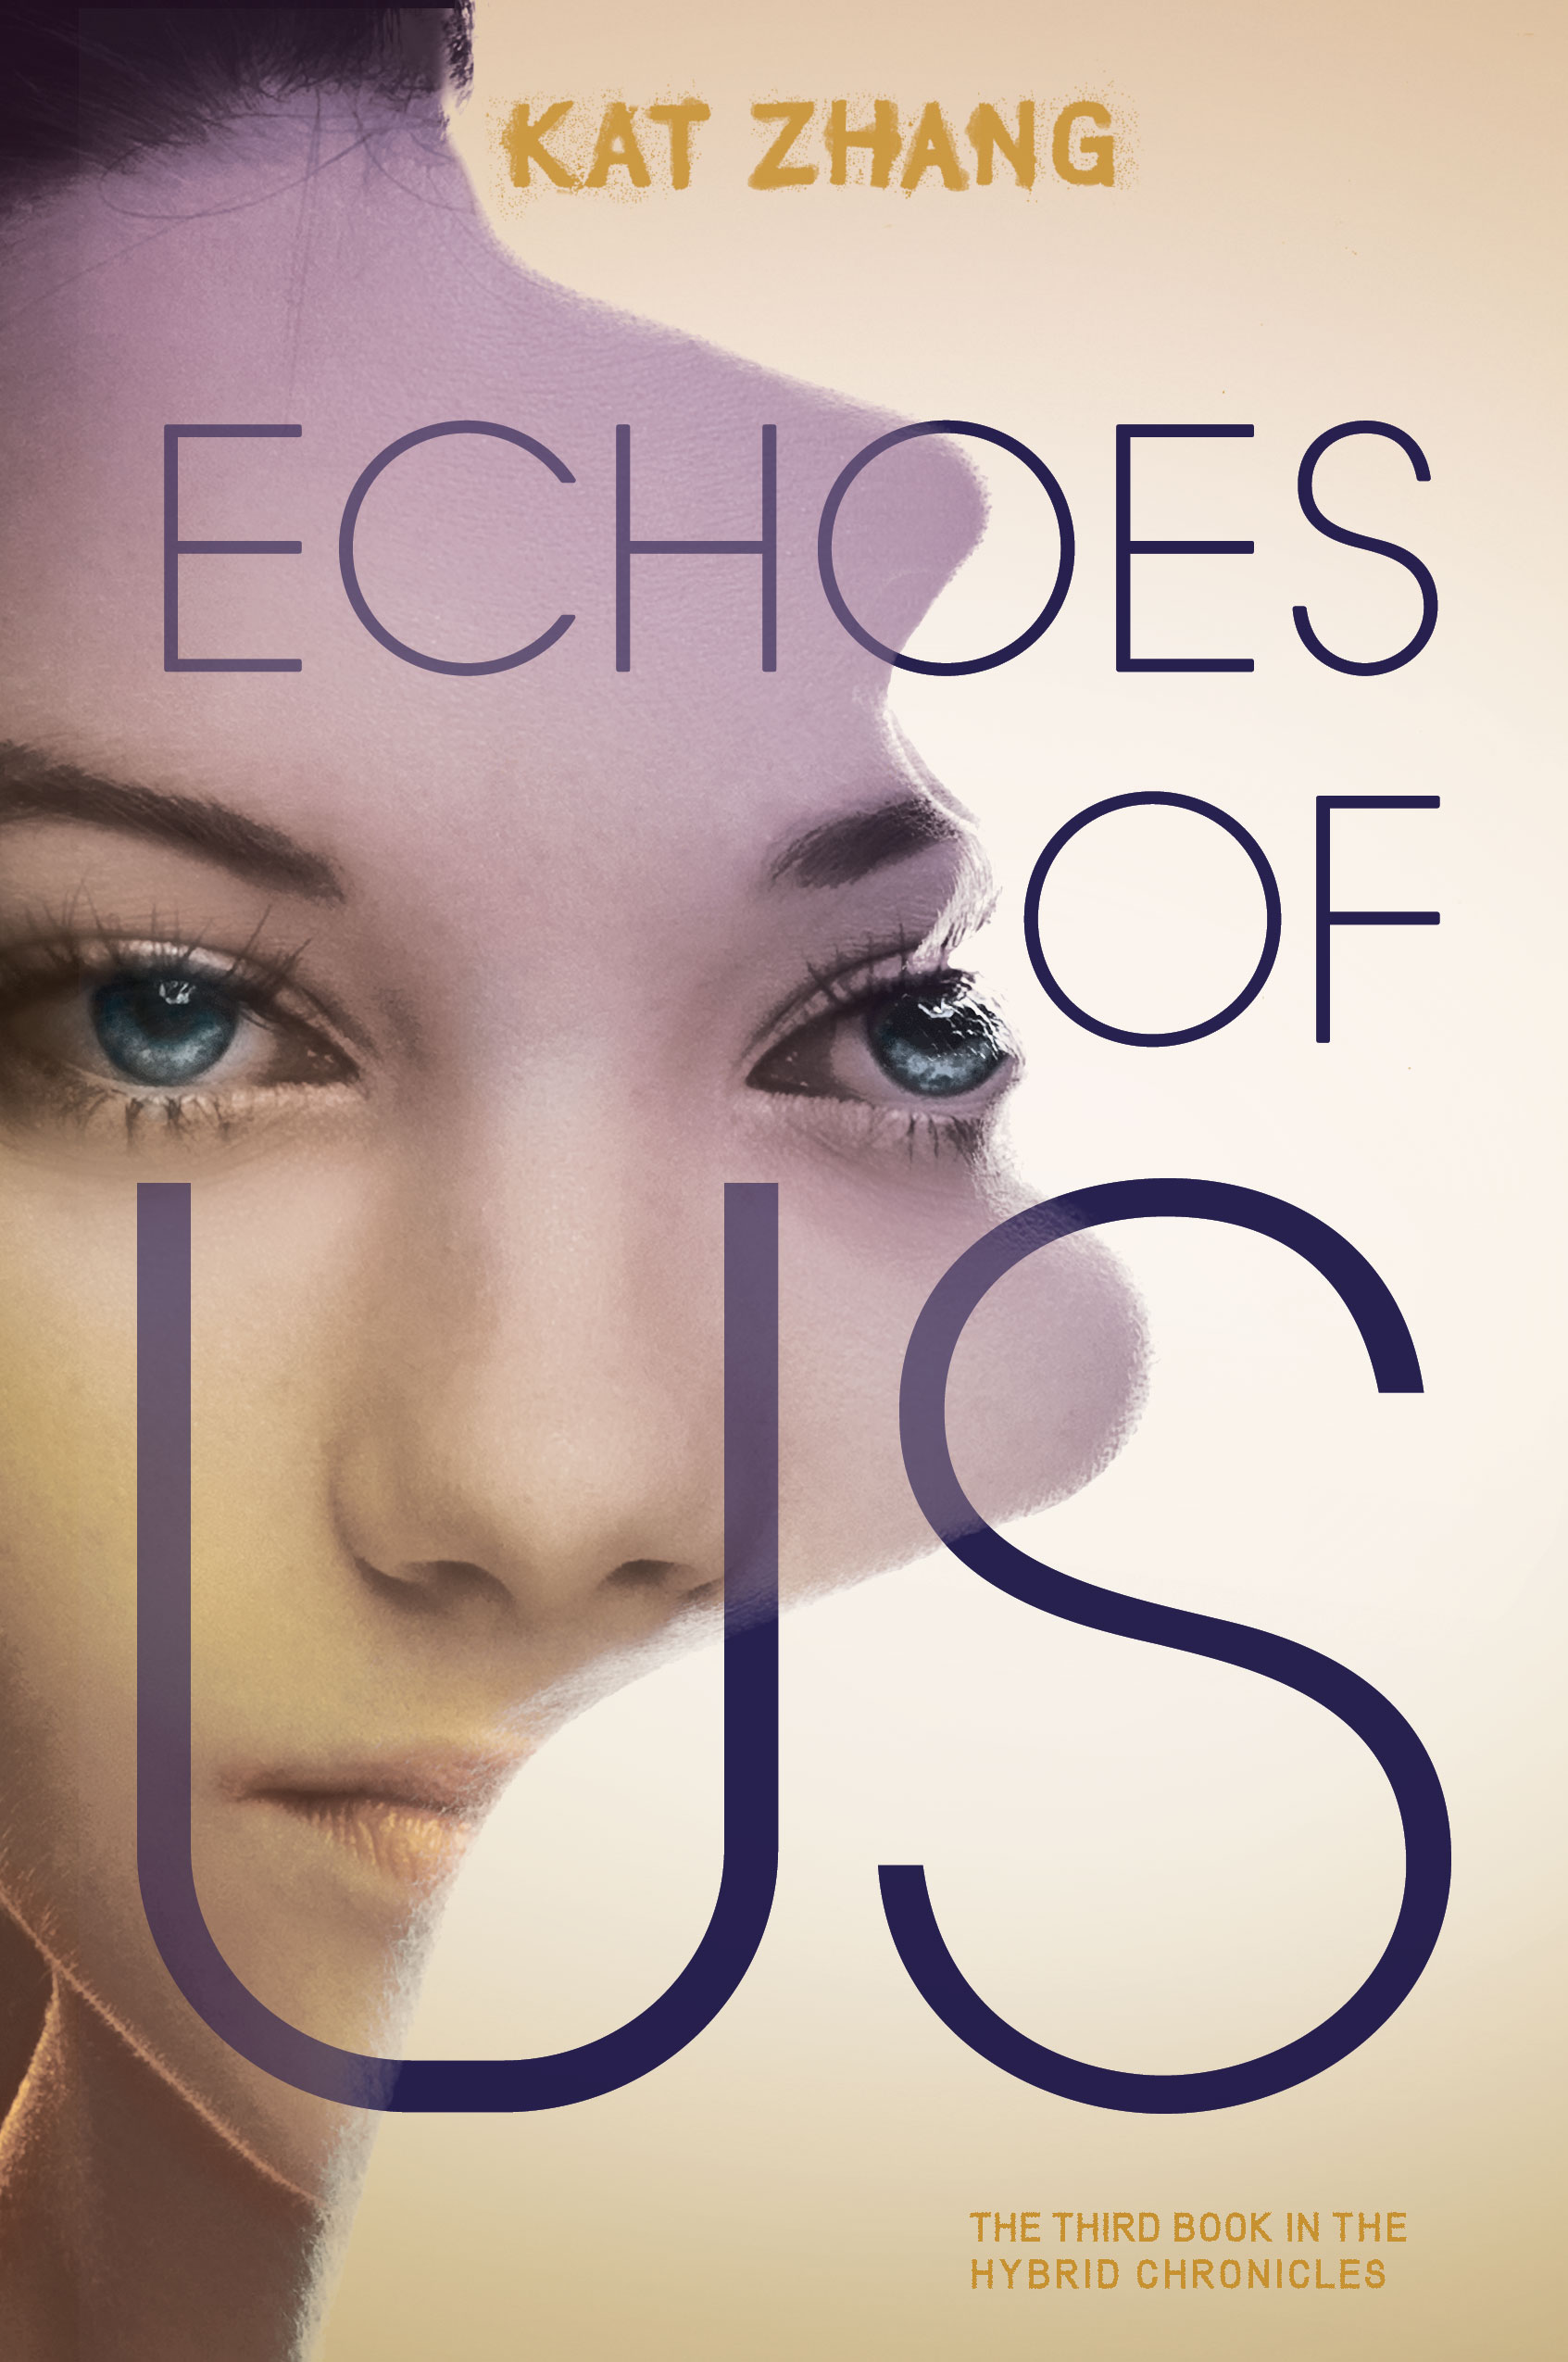 Echoes of Us (The Hybrid Chronicles #3) by Kat Zhang